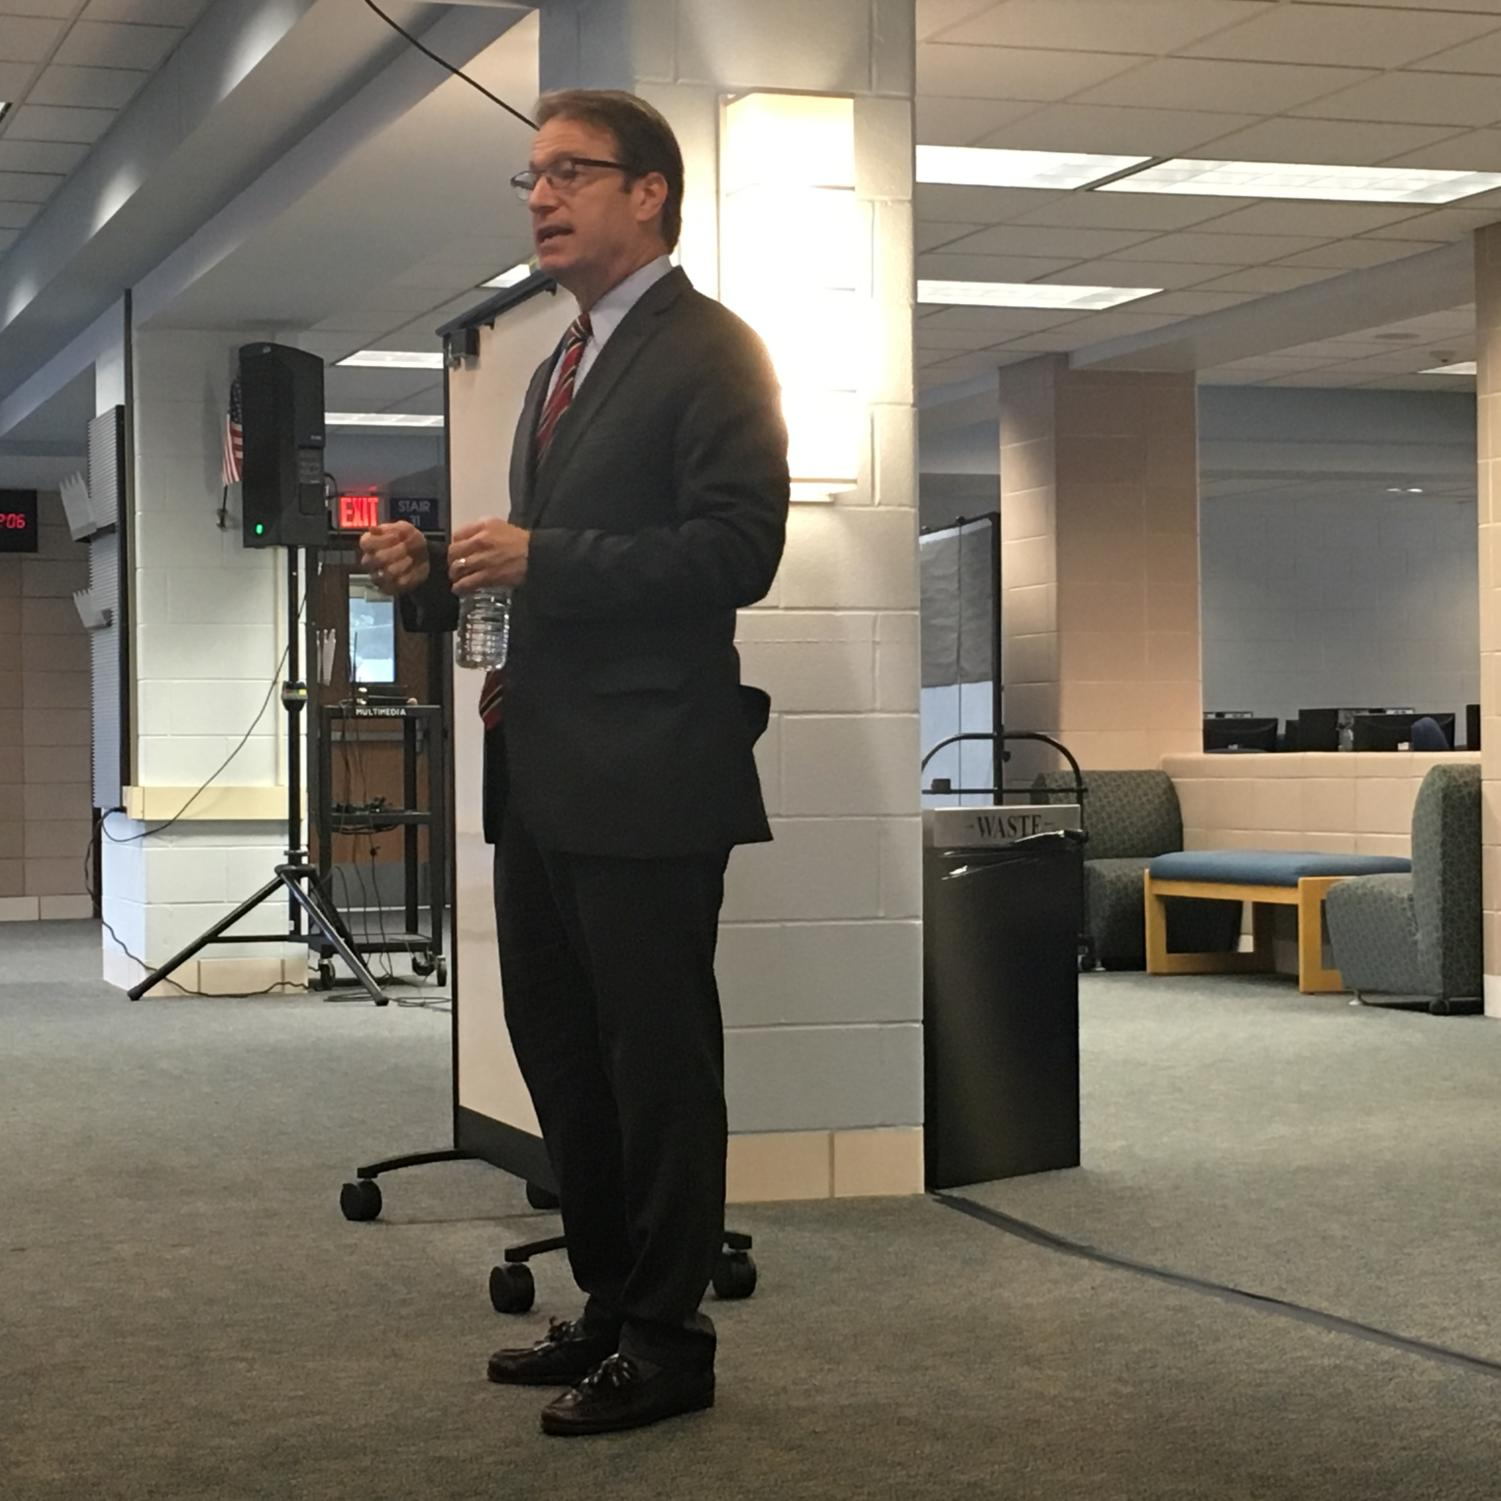 US Congressman Peter Roskam talk to students in the school library.